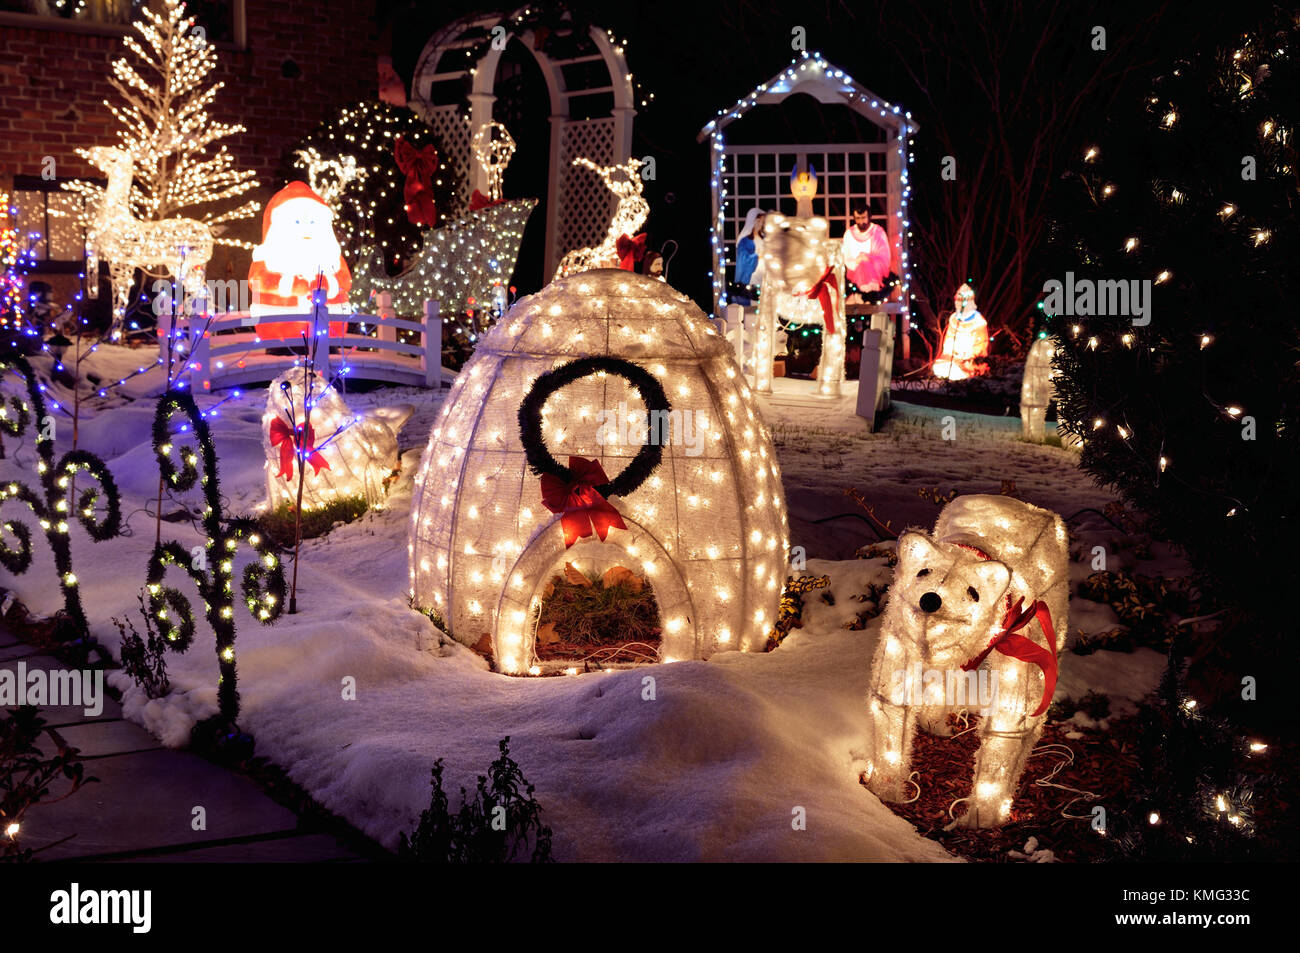 Outdoor christmas decoration at night lights and lighted ornaments outdoor christmas decoration at night lights and lighted ornaments stock photo 167540112 alamy aloadofball Choice Image